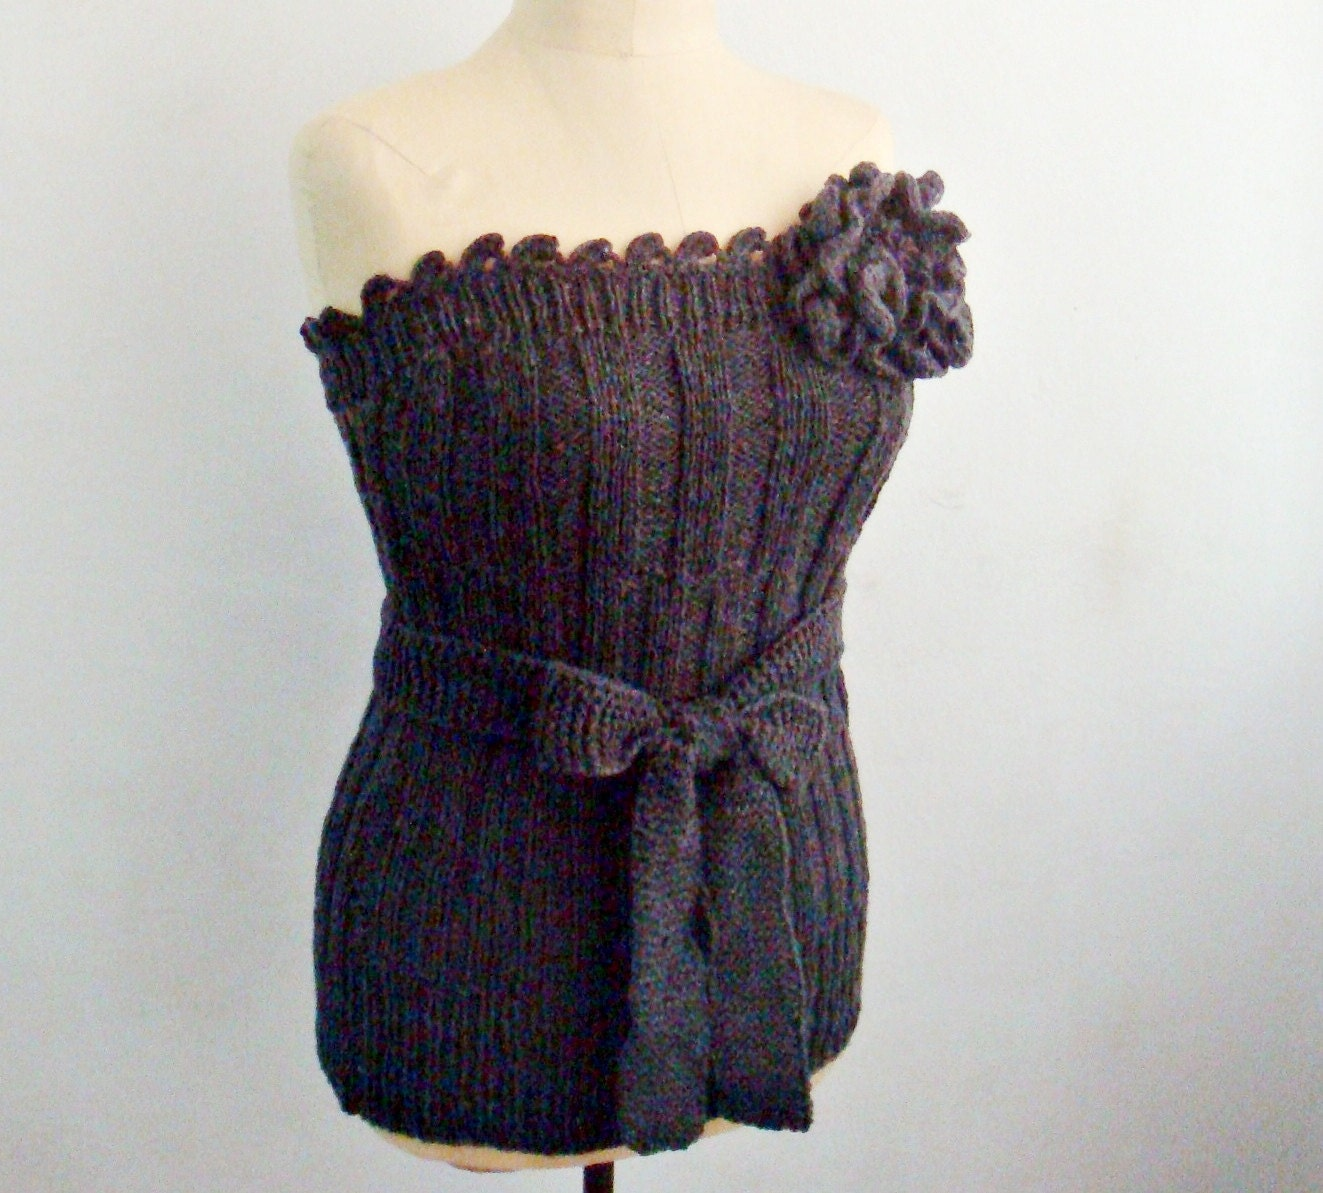 Knitting and Crocheting PATTERN Knit Bustier, Corset Top Pattern ...